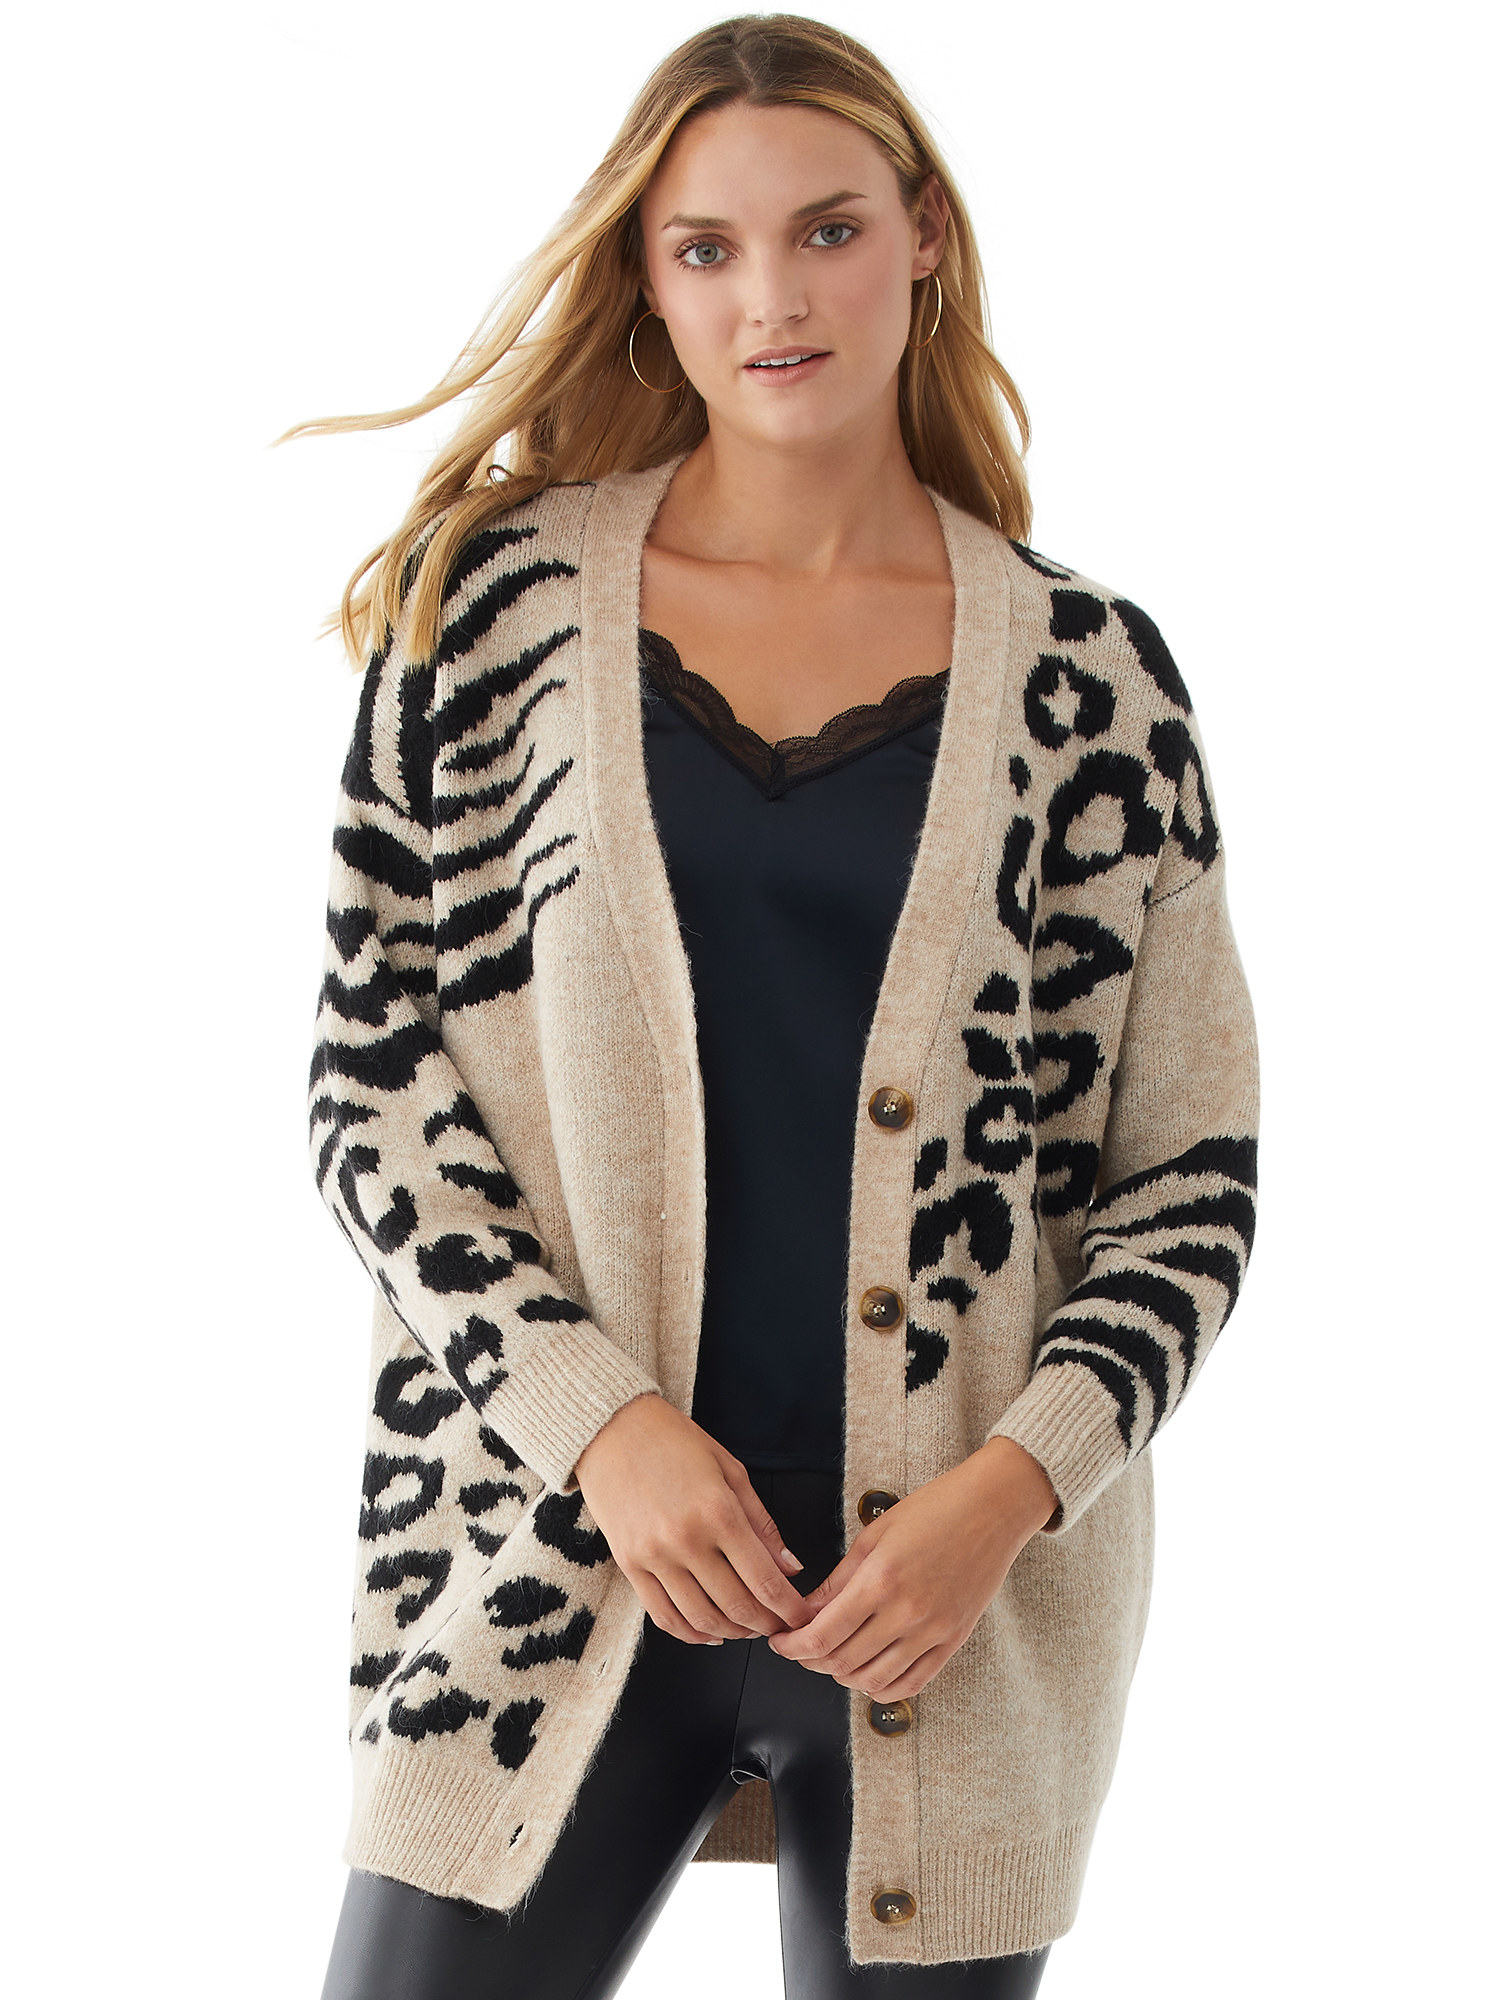 person wearing a beige animal print cardigan